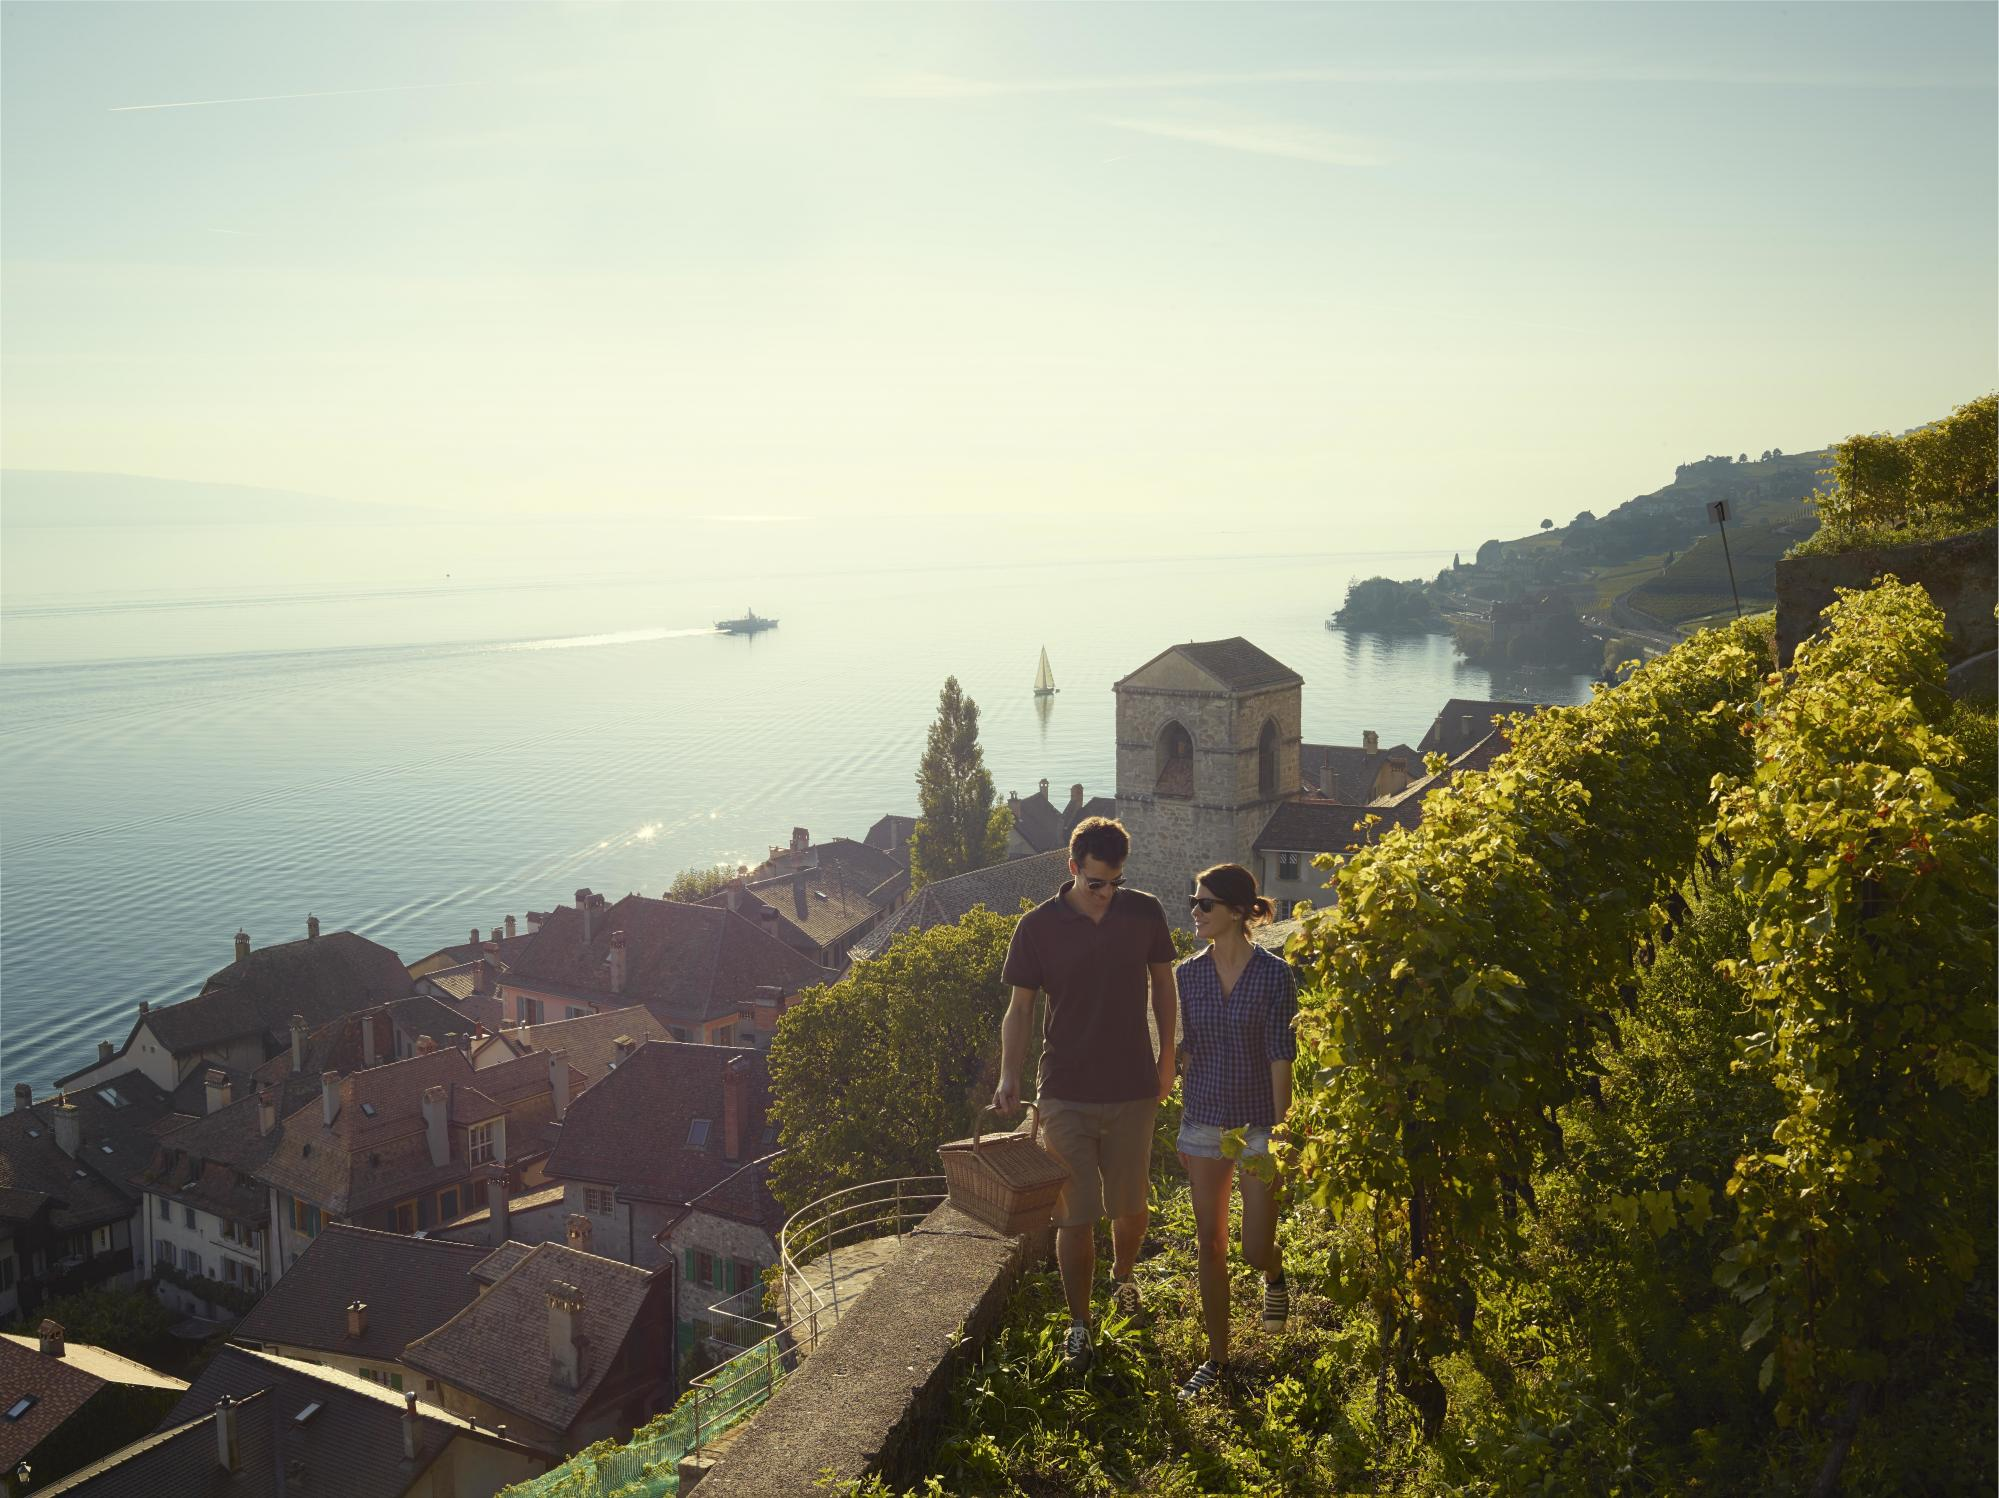 Walks through the Lavaux vineyard